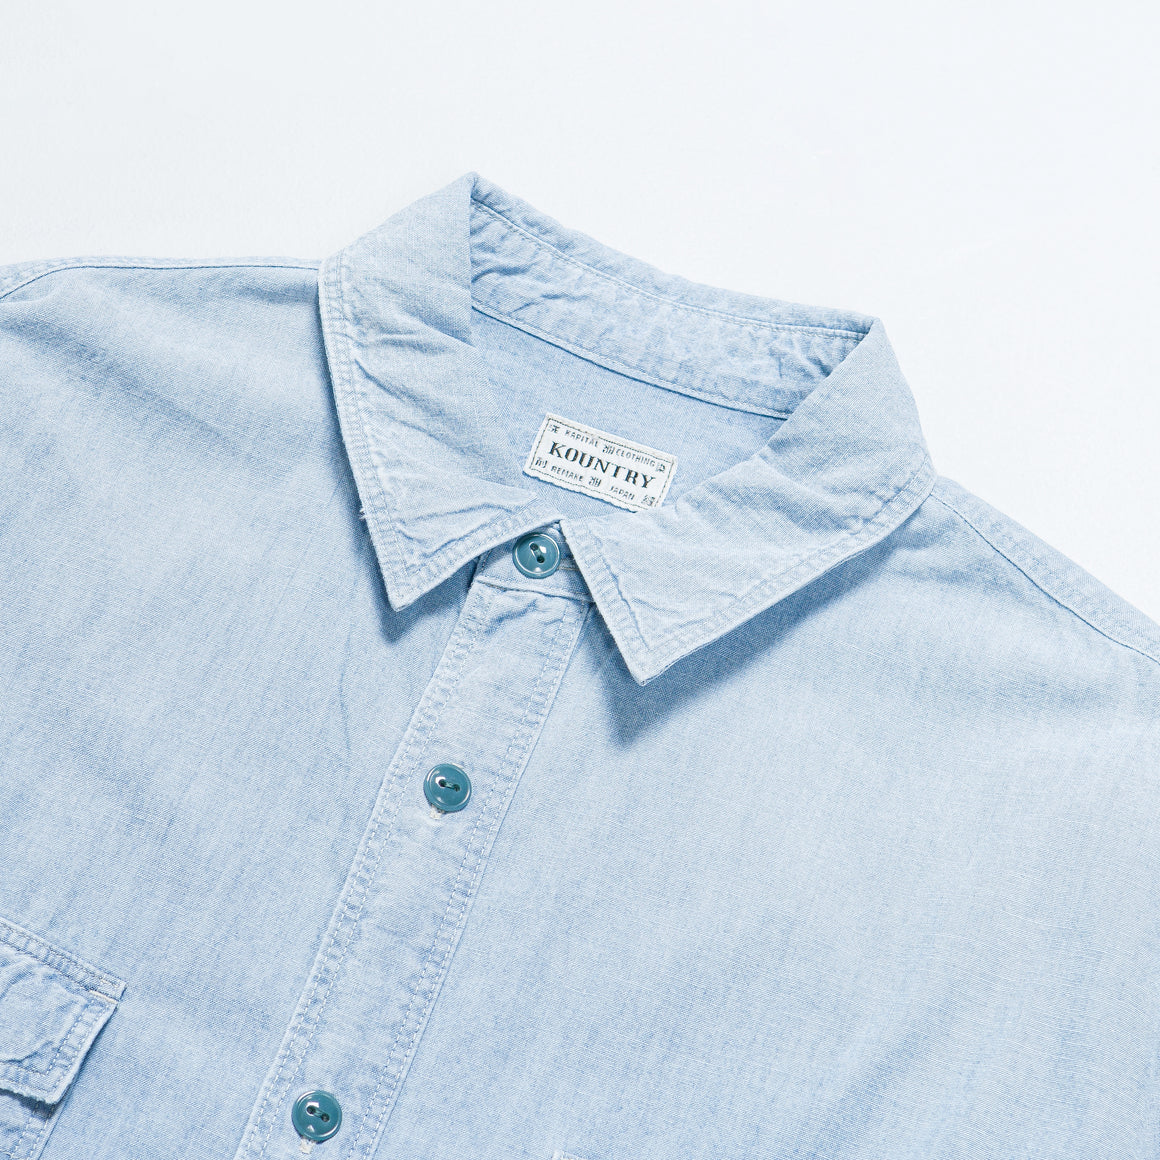 Kapital - Chambray Work Shirt (BONE Embroidery) - Sax - Up There